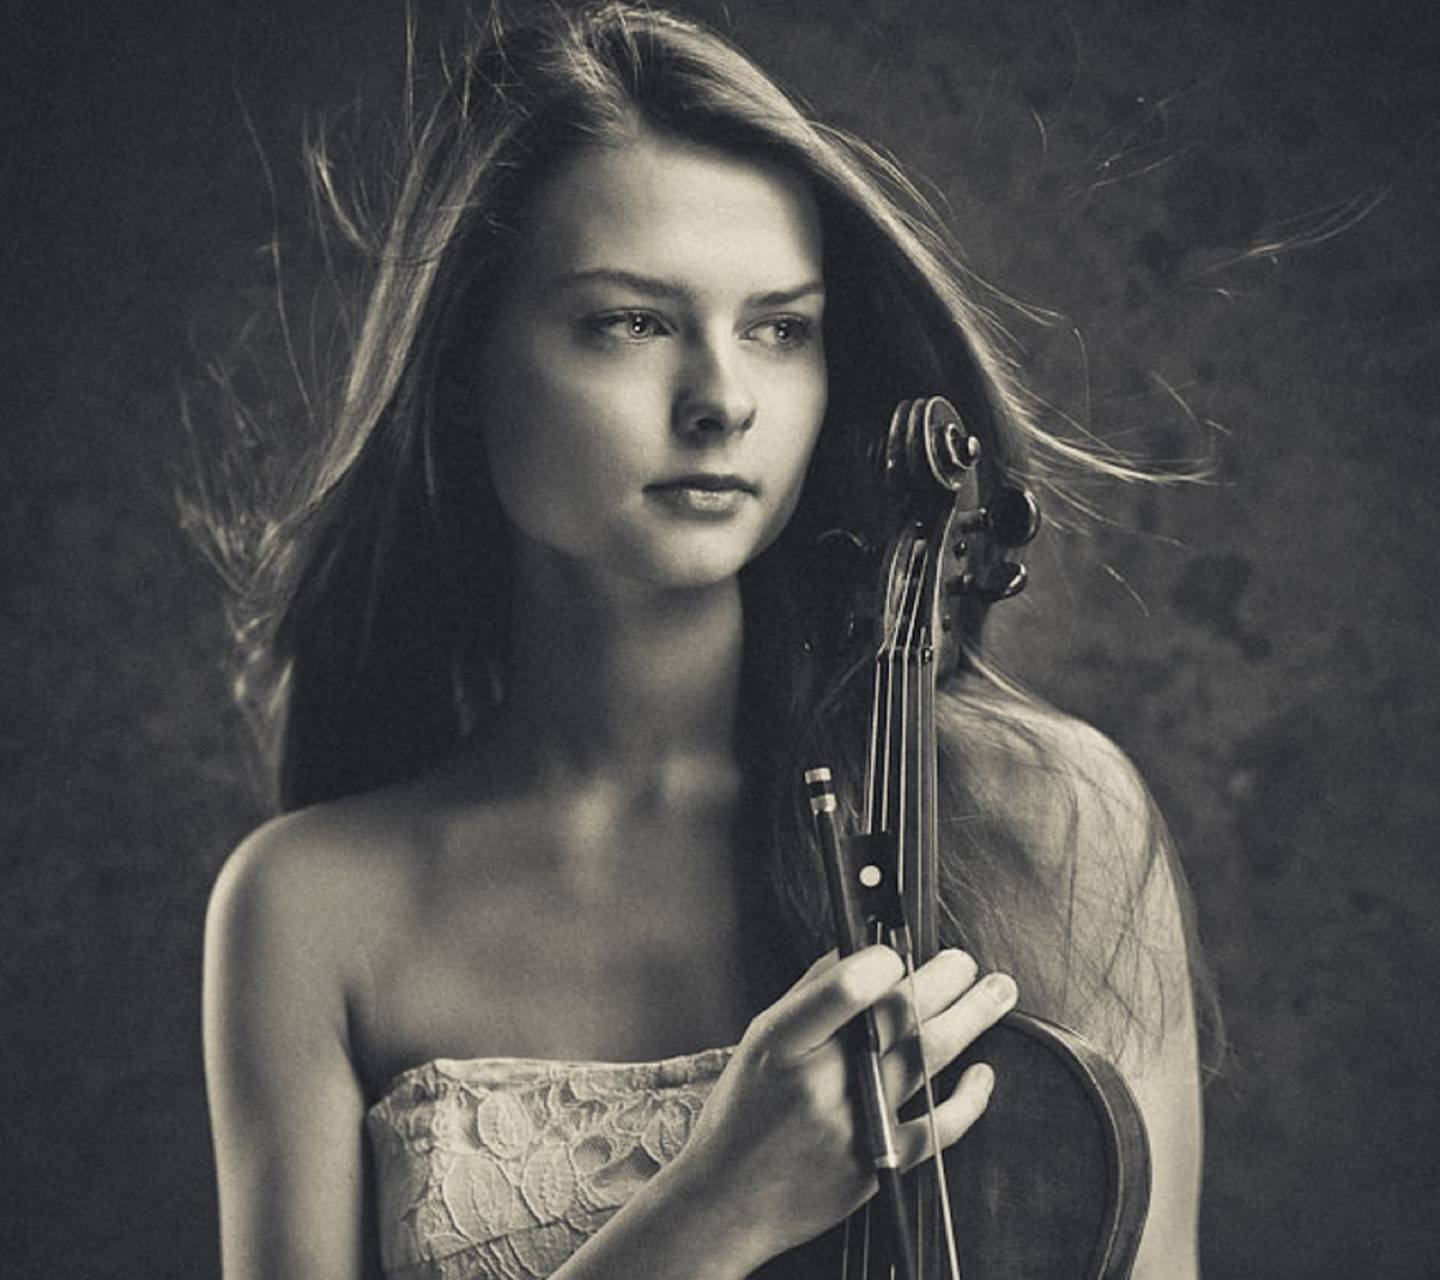 Girl With Violin Wallpaper By Colorfulworld C7 Free On Zedge